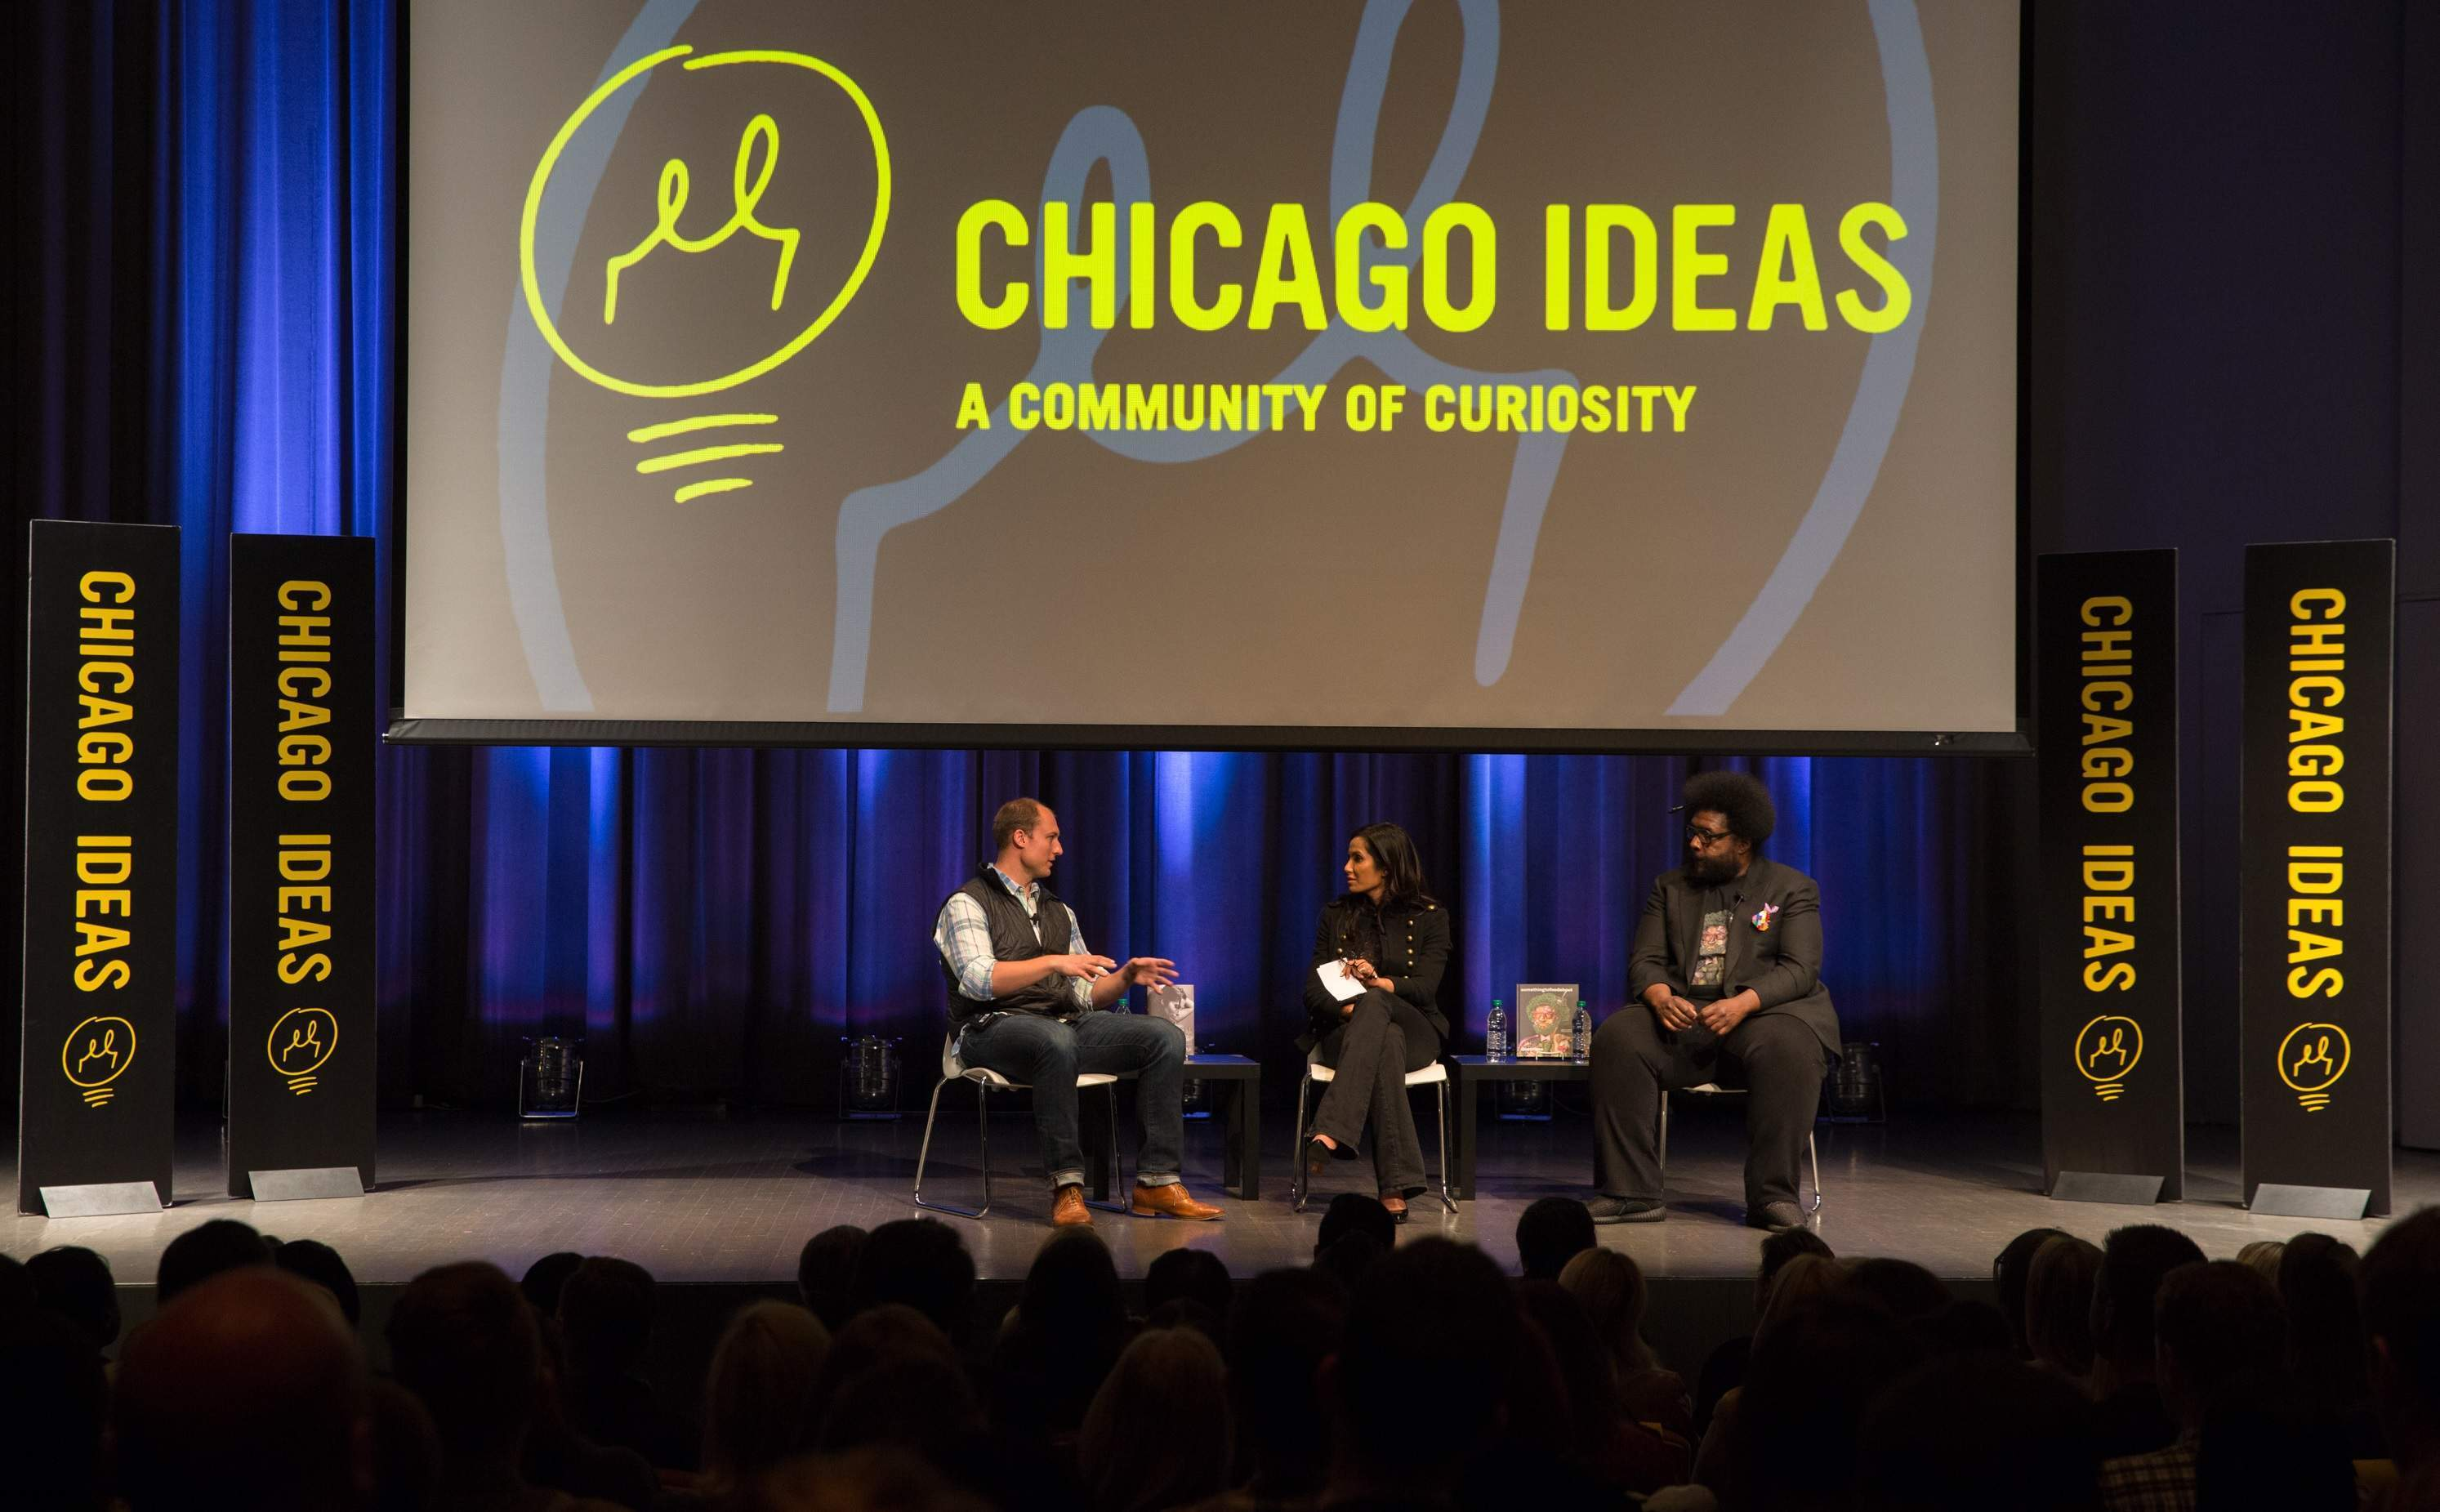 Chicago Ideas Week: Inspirational and interesting talks from previous speakers